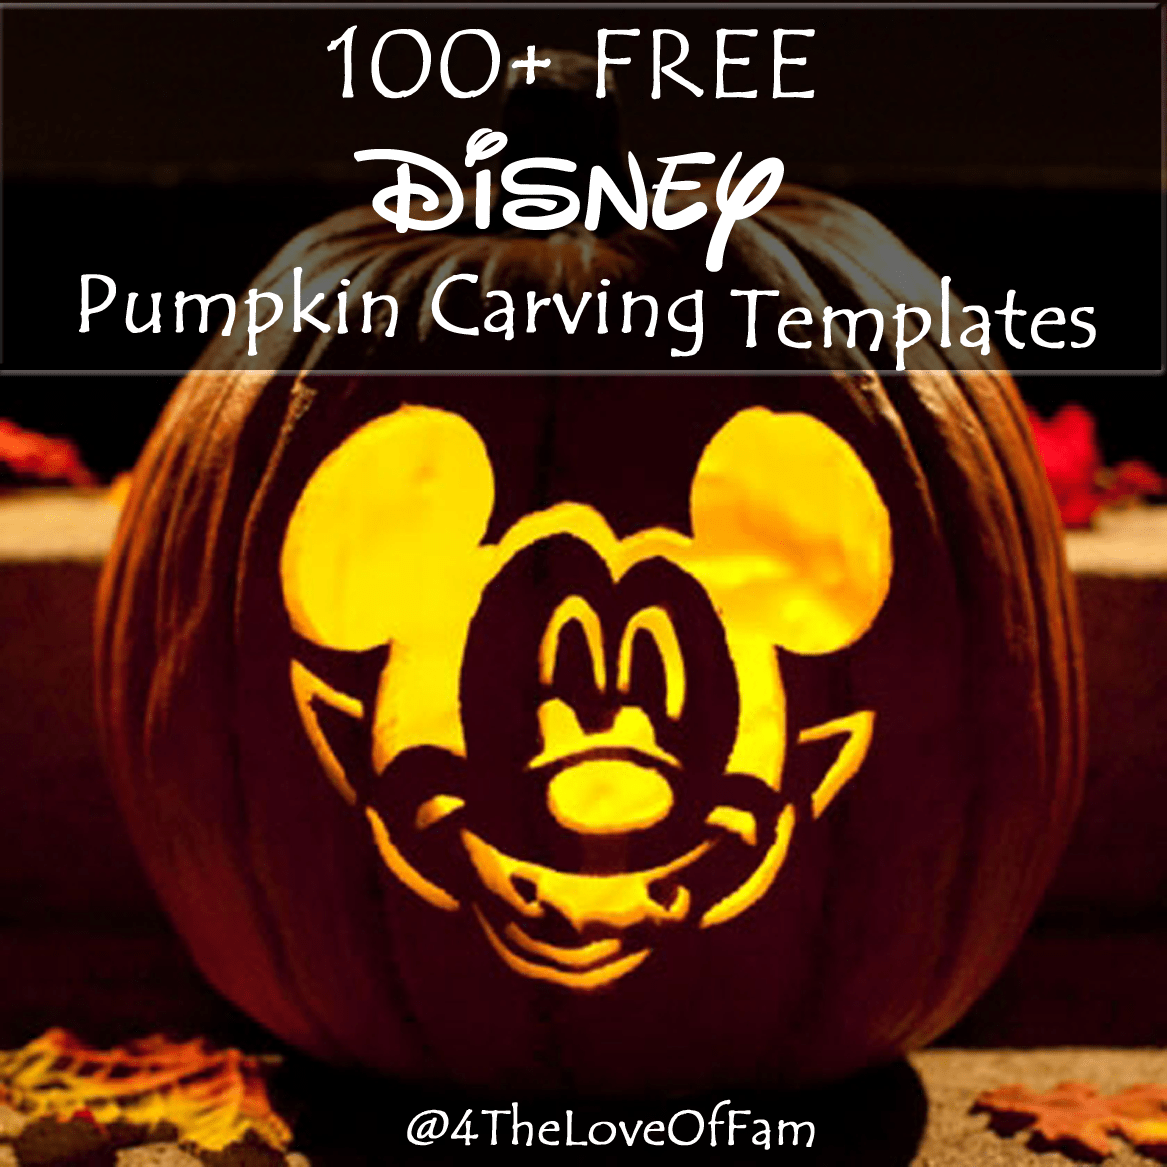 Easy Disney Pumpkin Carving Patterns New Inspiration Ideas